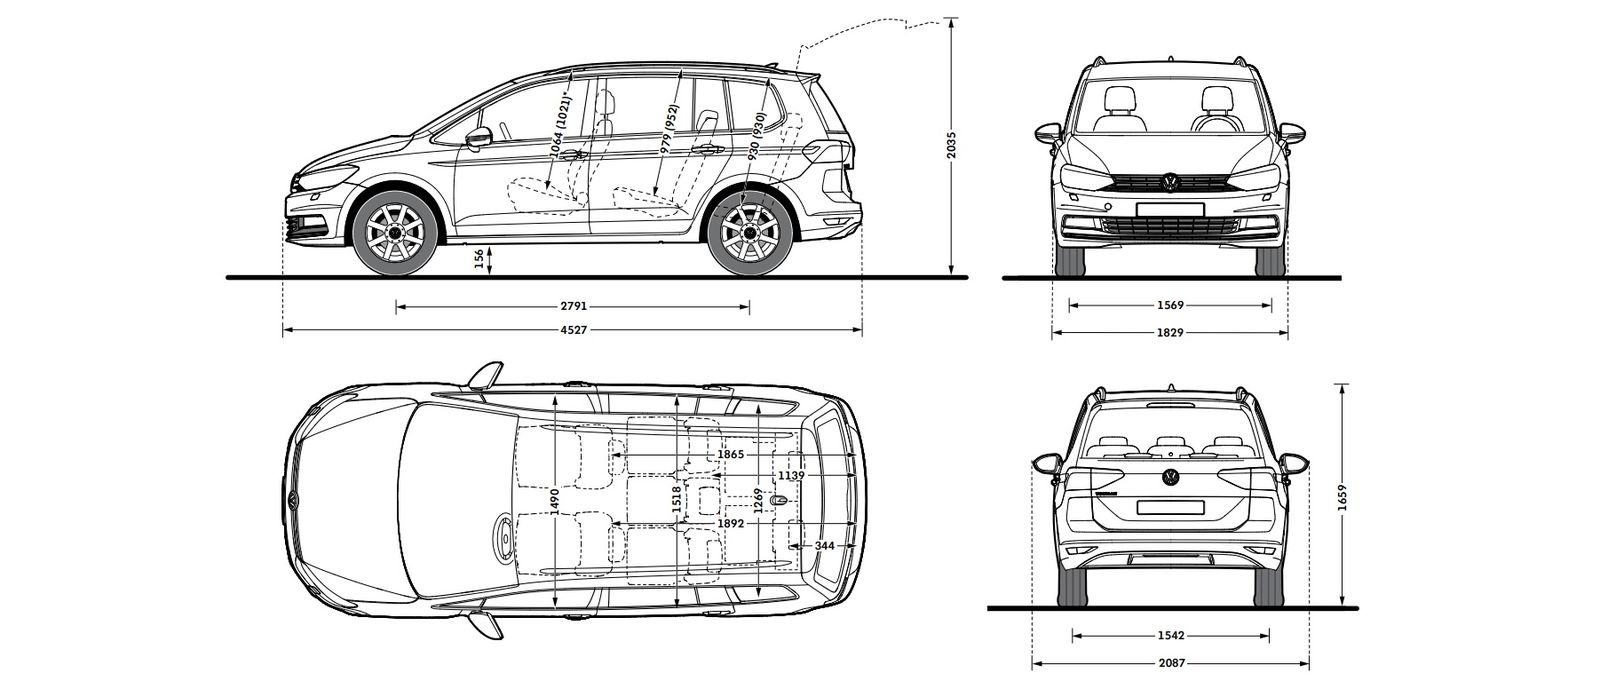 vw touran sizes and dimensions guide